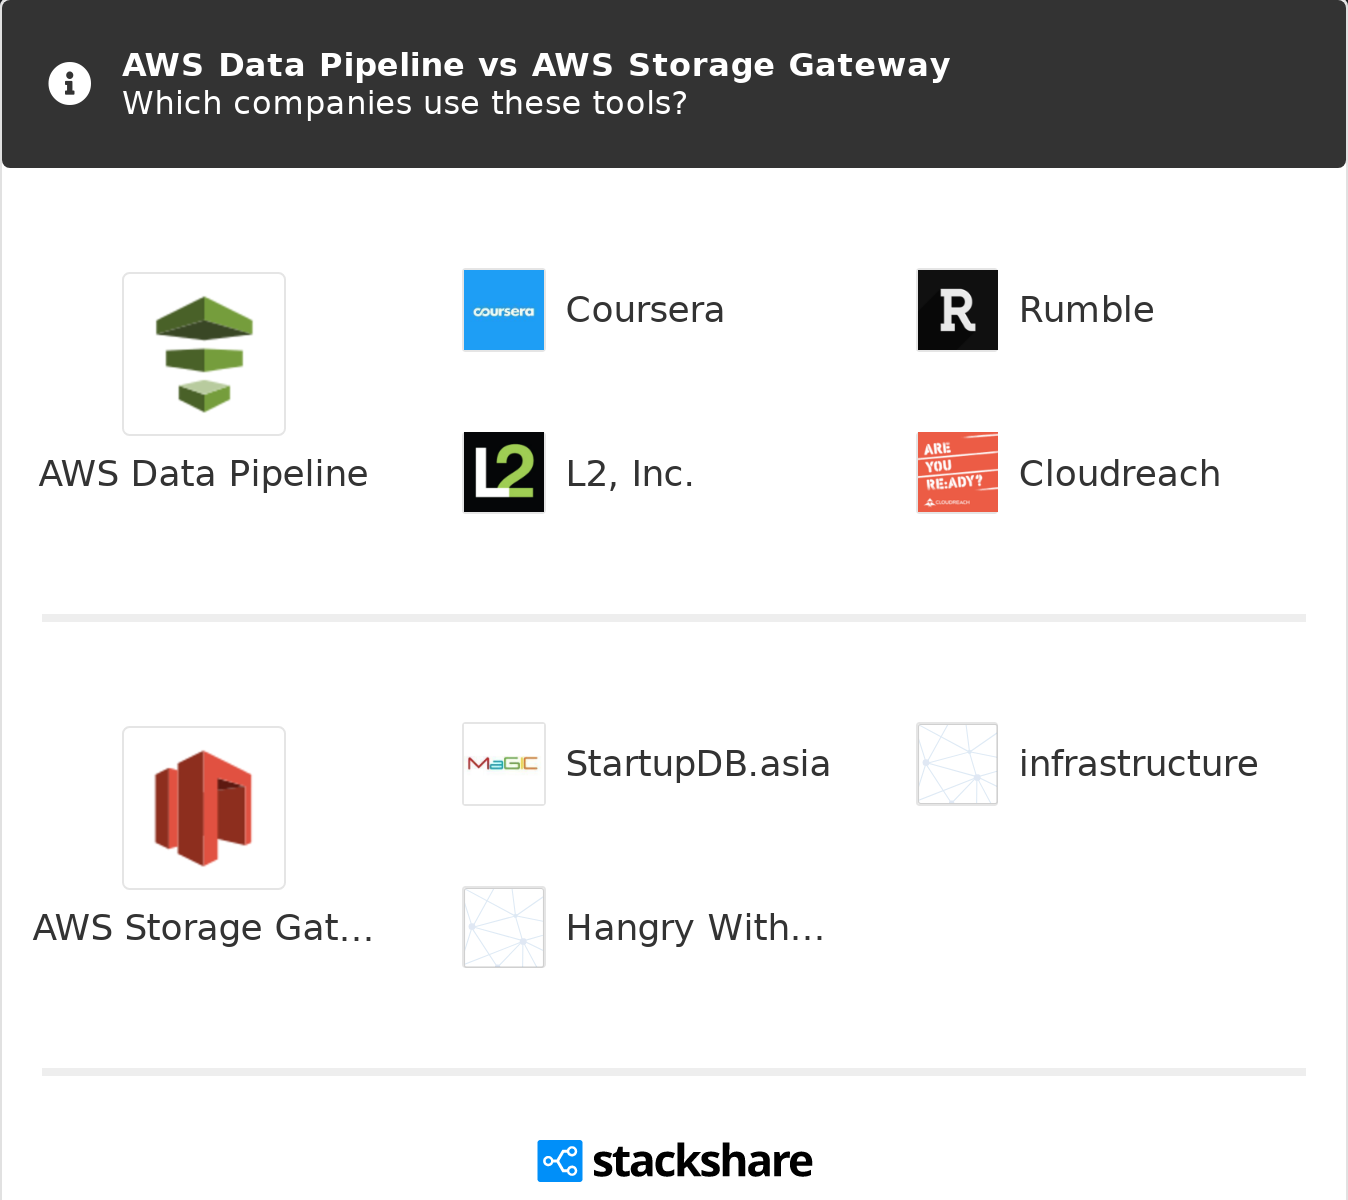 AWS Data Pipeline vs AWS Storage Gateway | What are the